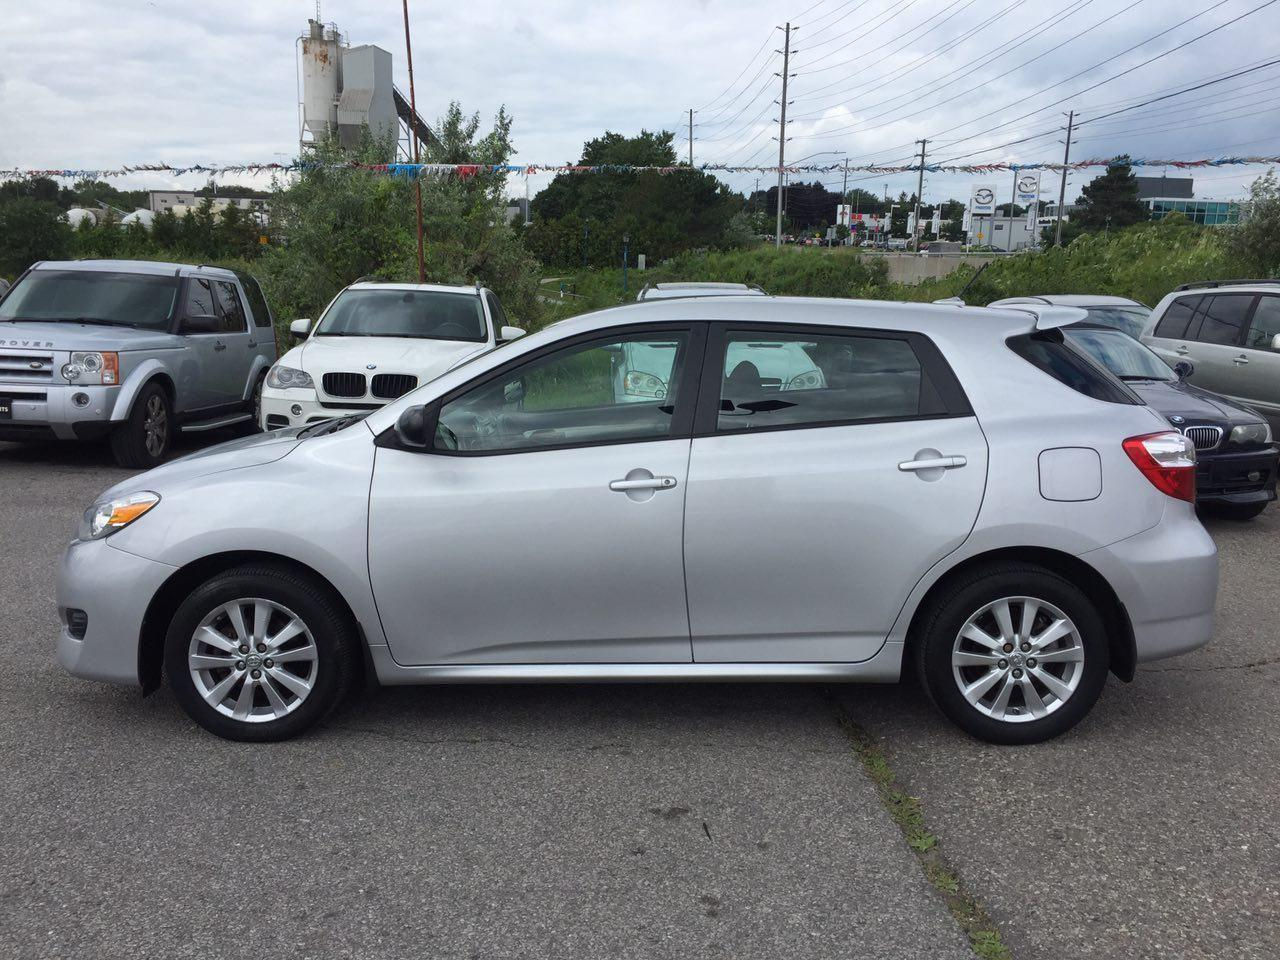 used 2010 toyota matrix auto for sale in newmarket ontario. Black Bedroom Furniture Sets. Home Design Ideas